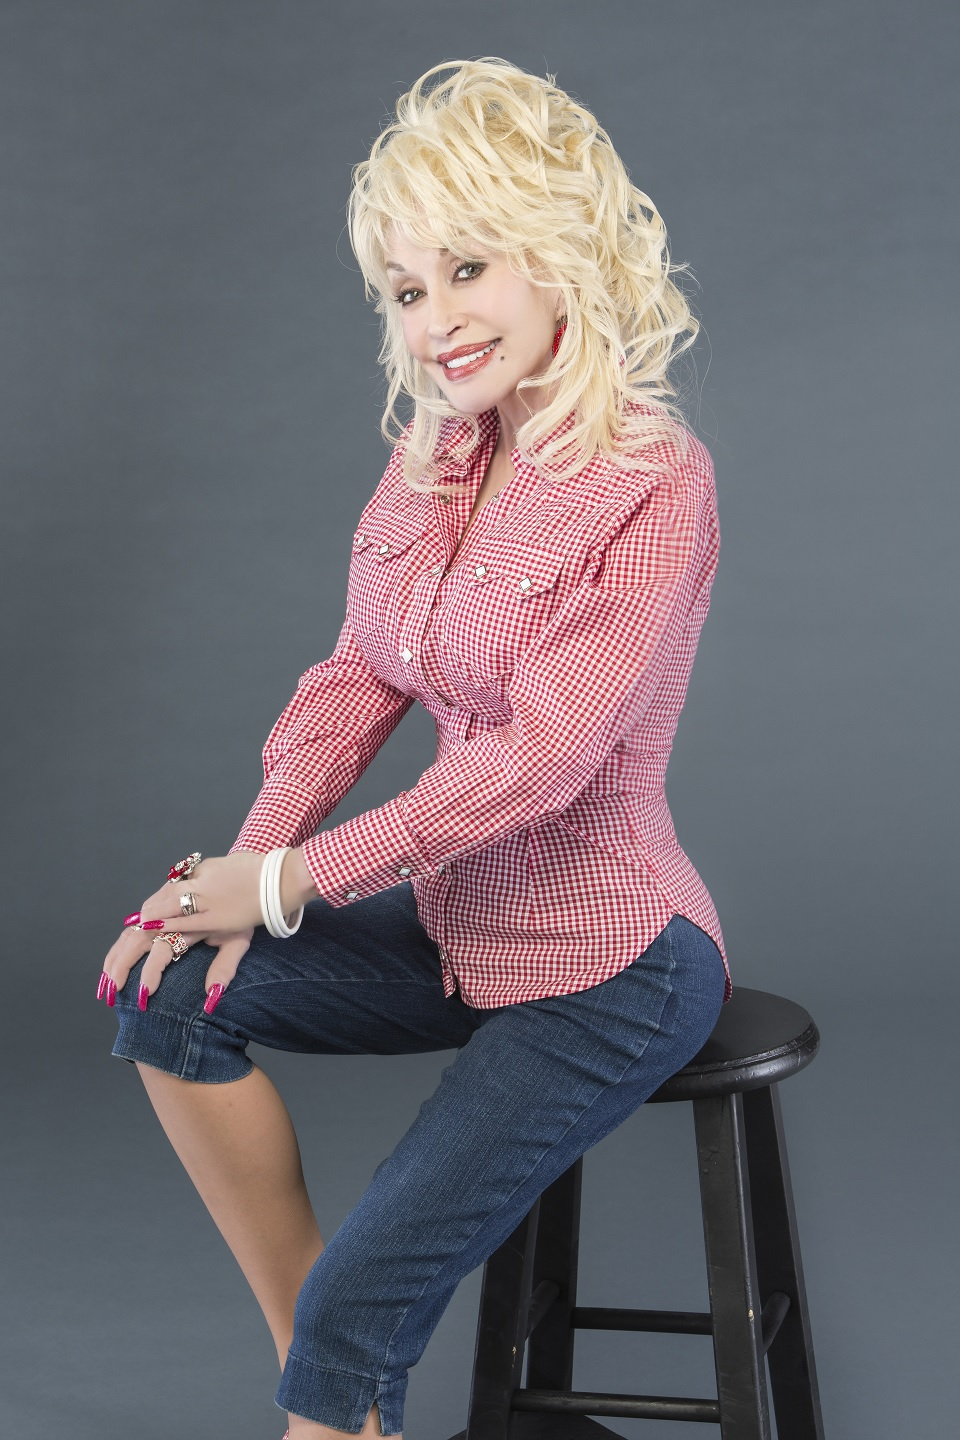 dolly parton - photo #23